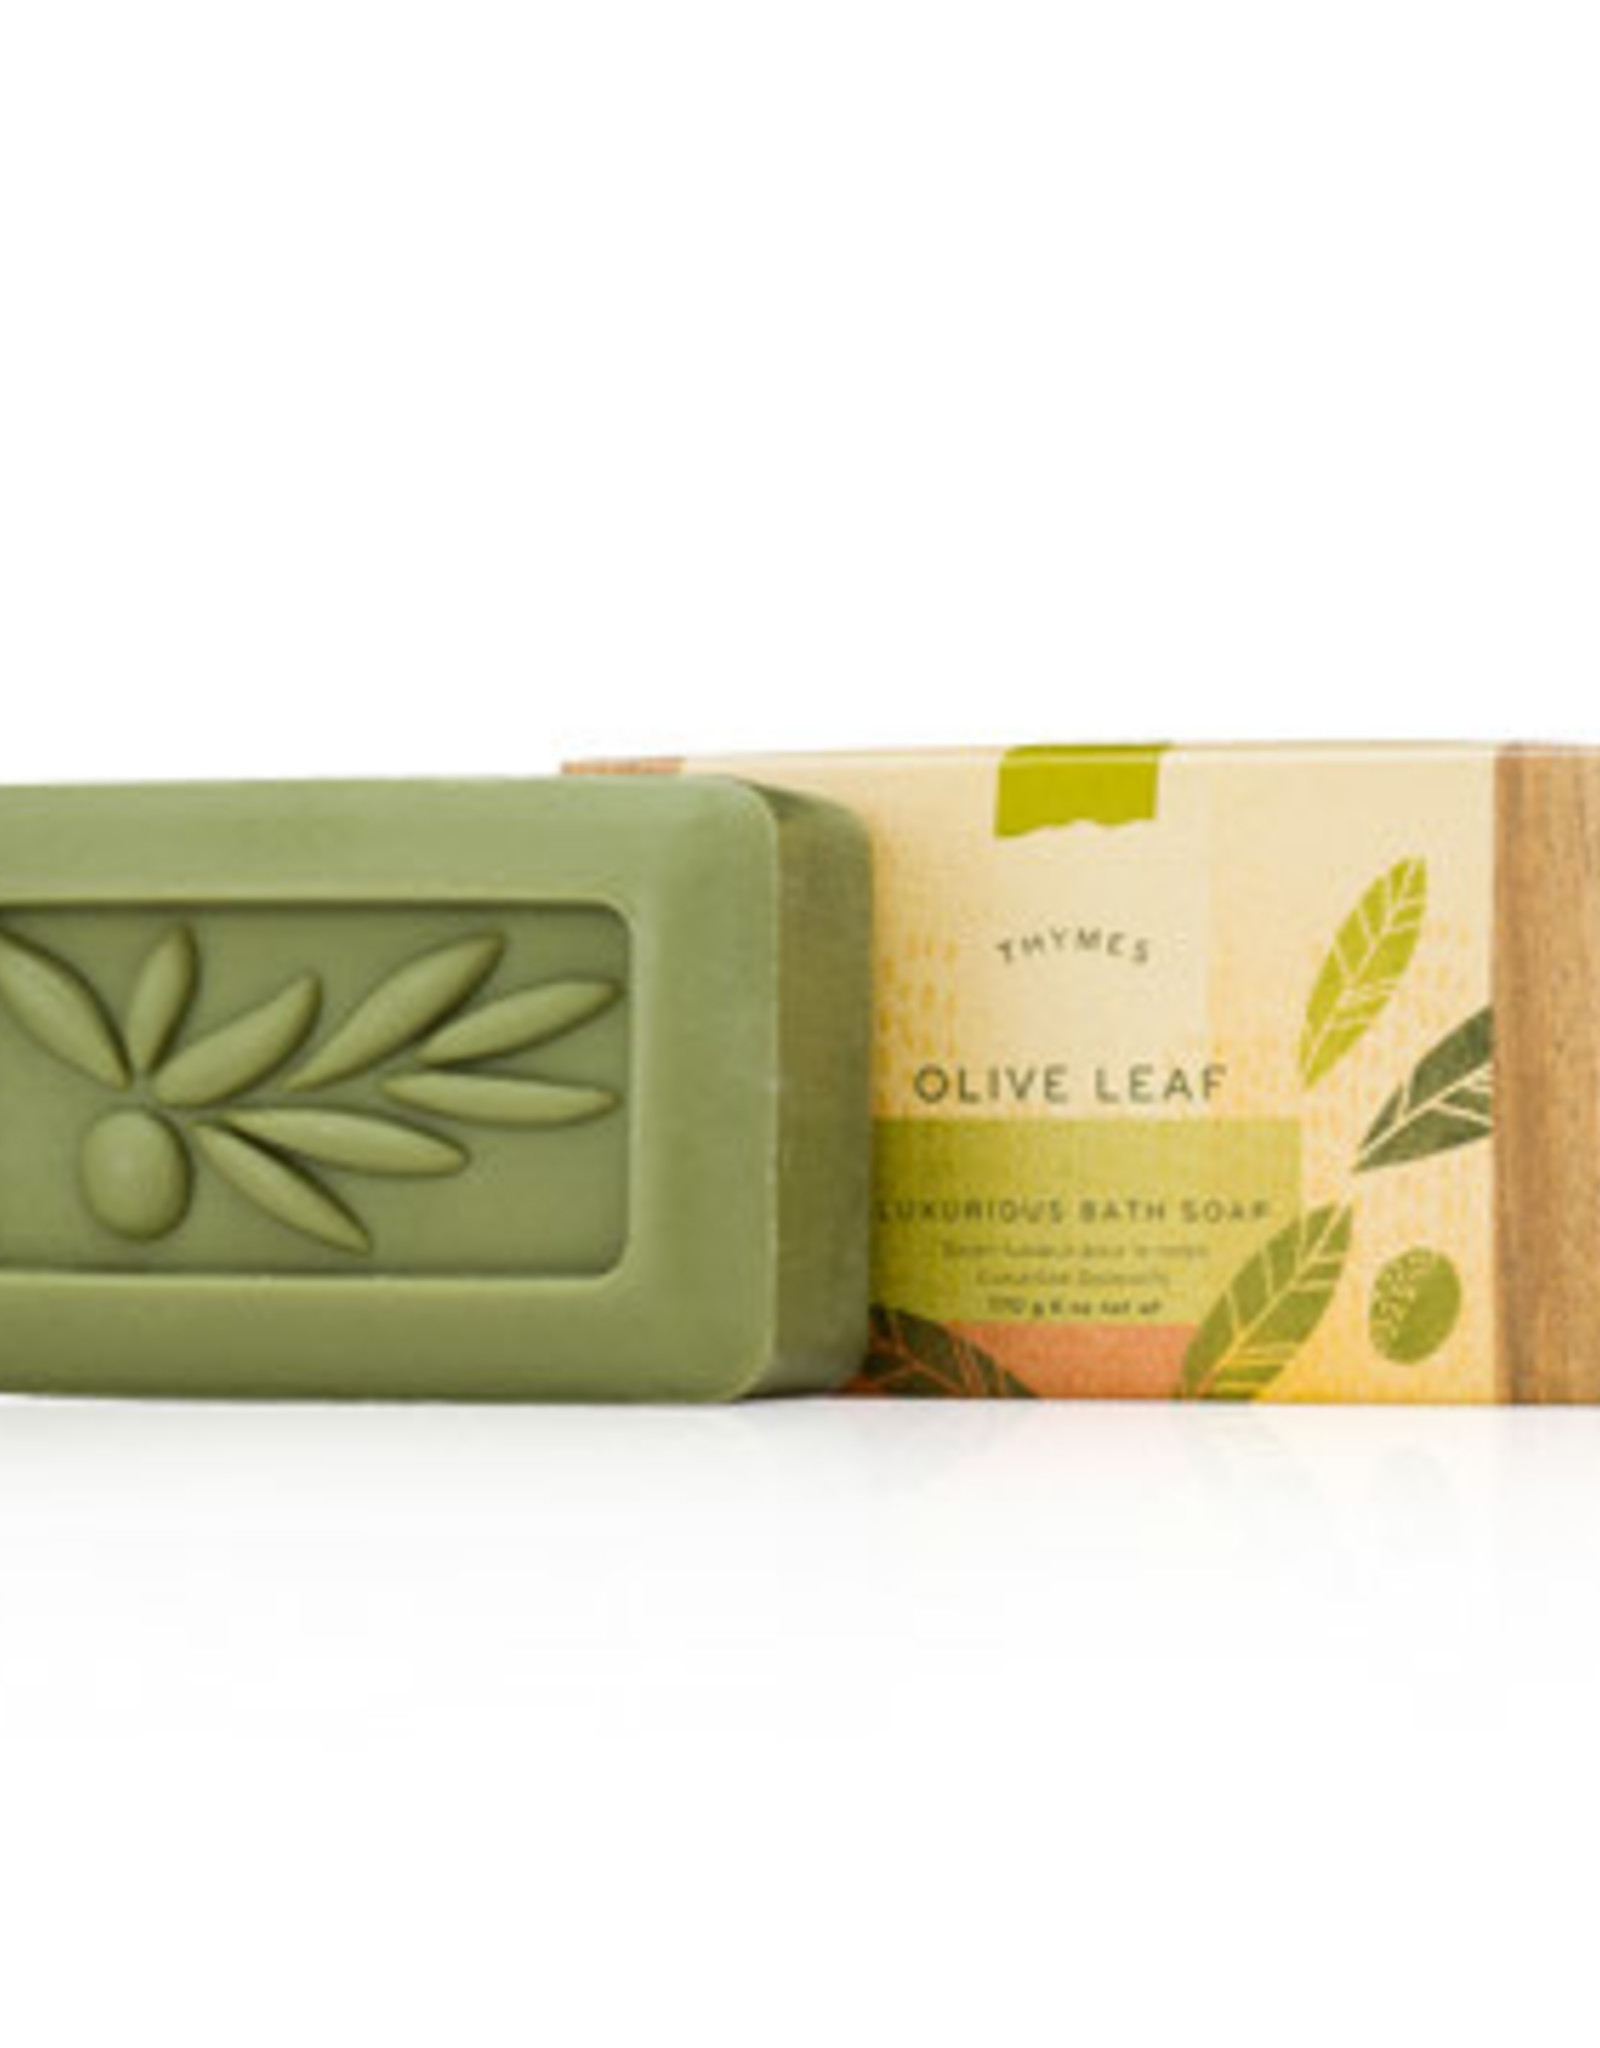 Olive Leaf Soap Bar